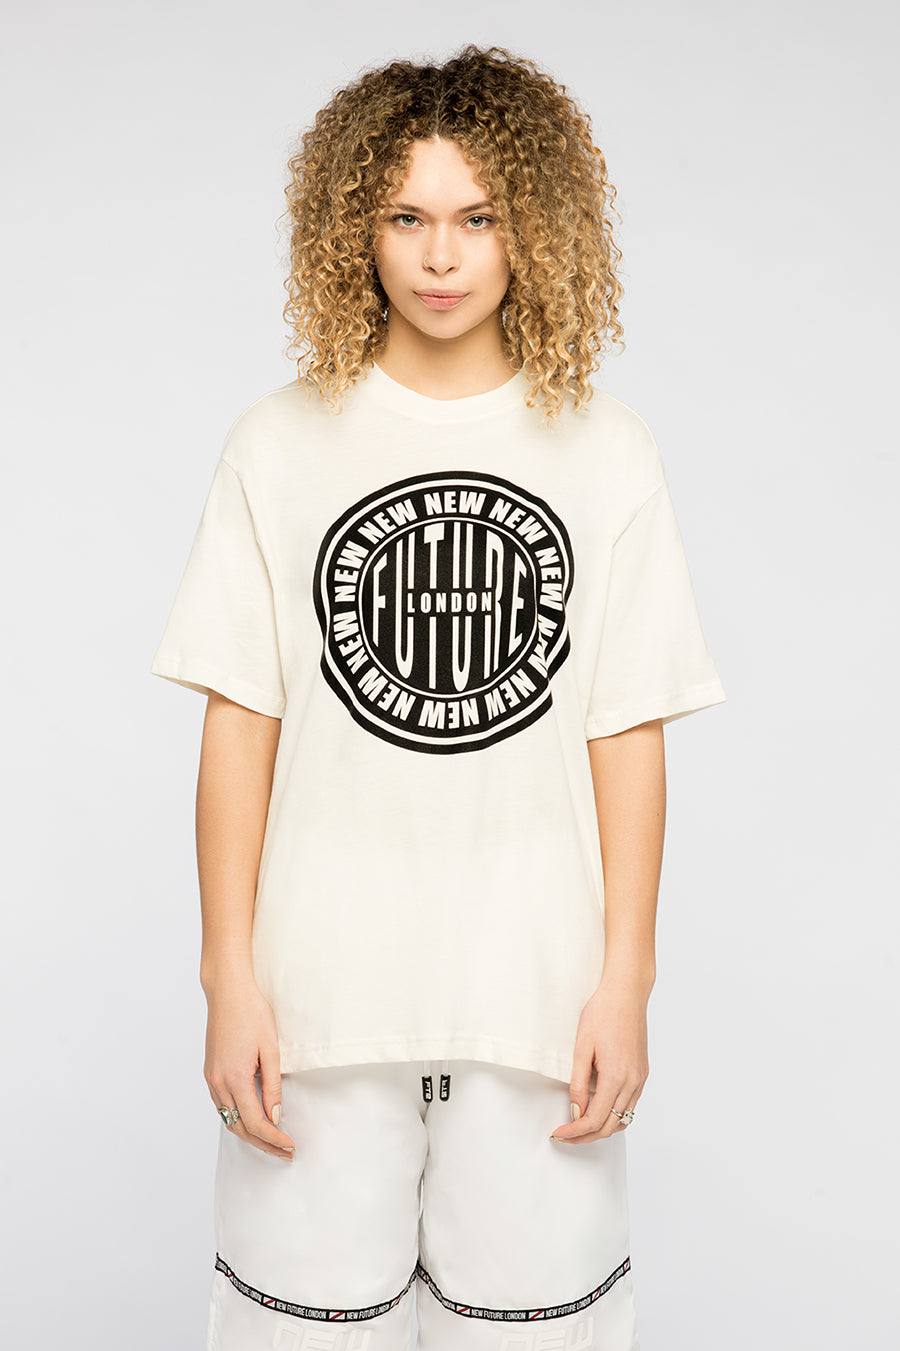 new_future_london_stamp_t_shirt_wht-1.jpg